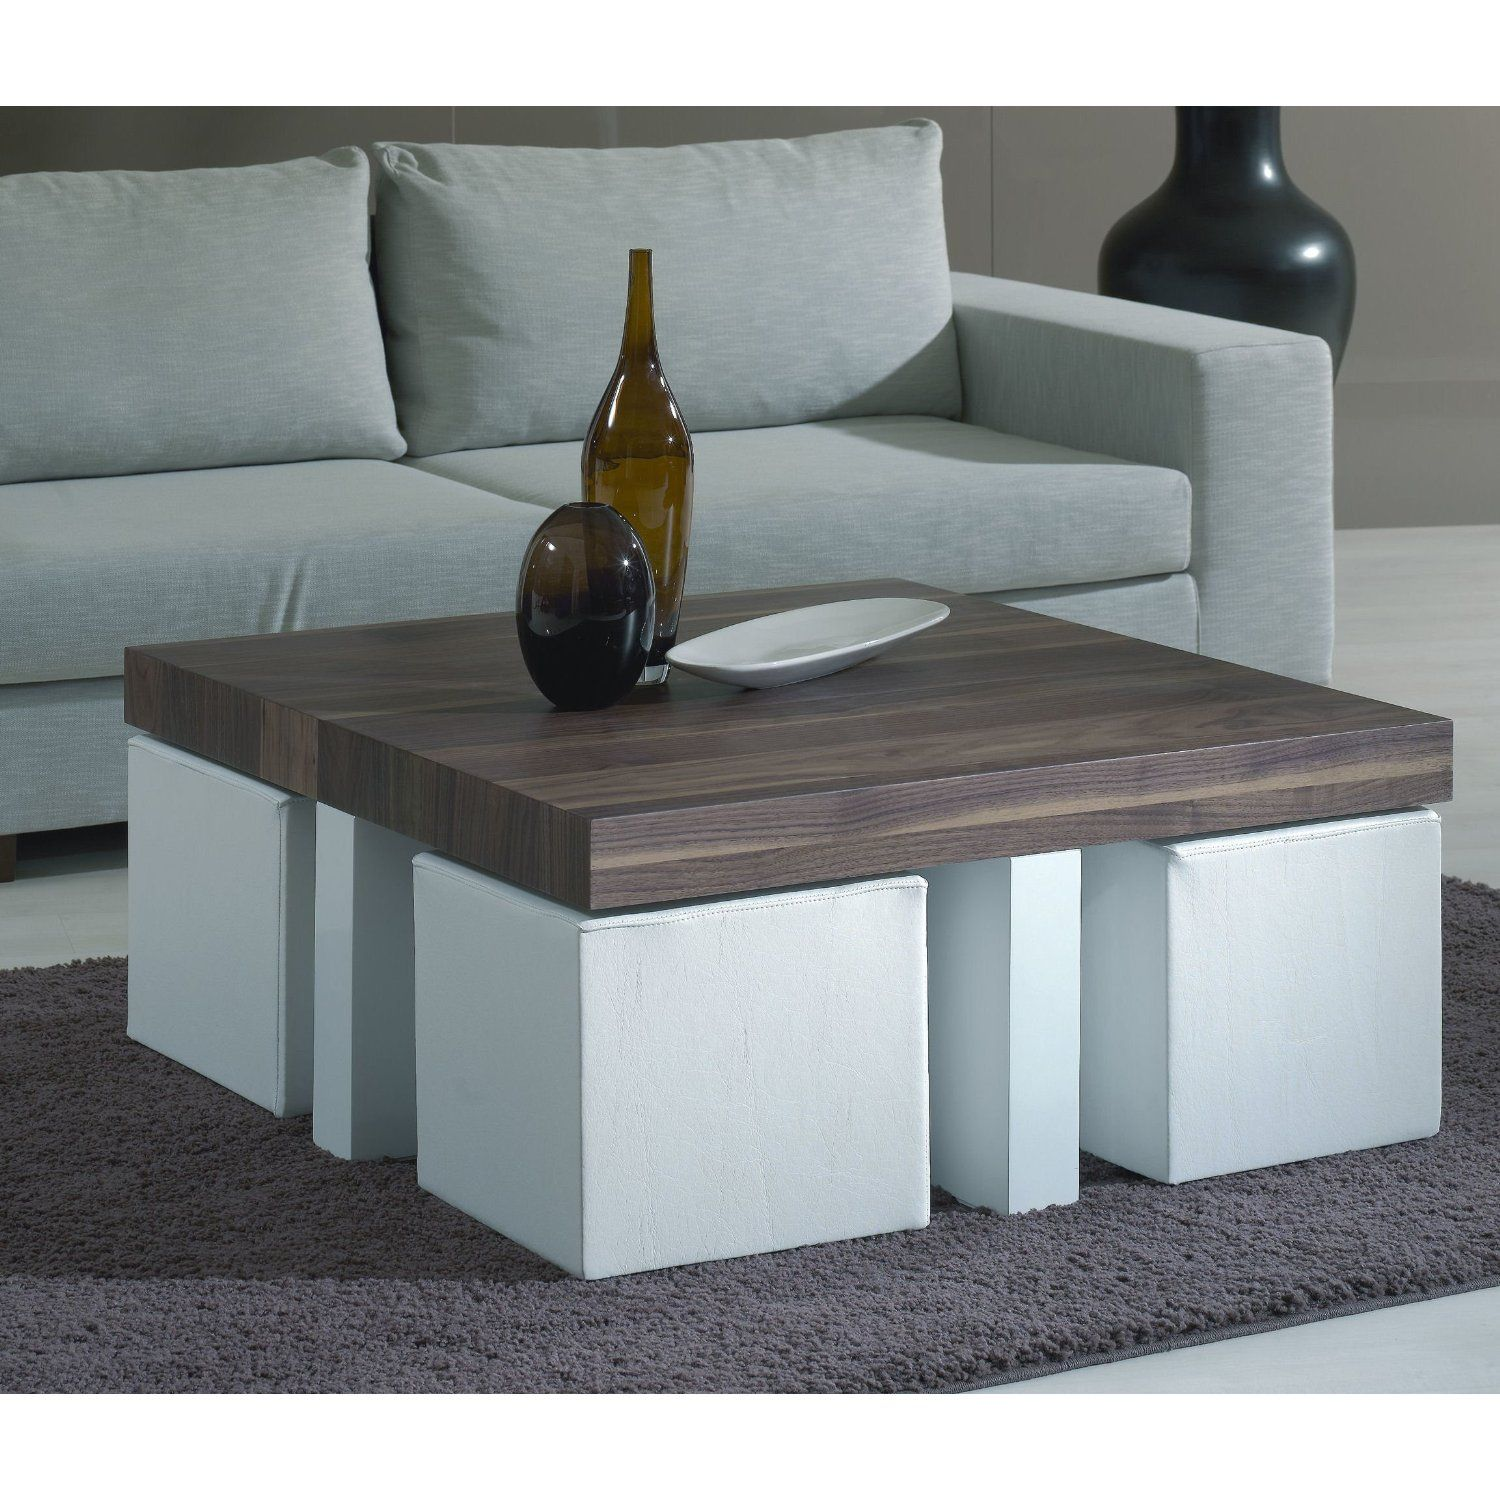 Coffee Table With Stools Love This Idea For Tucked Under A More Seating